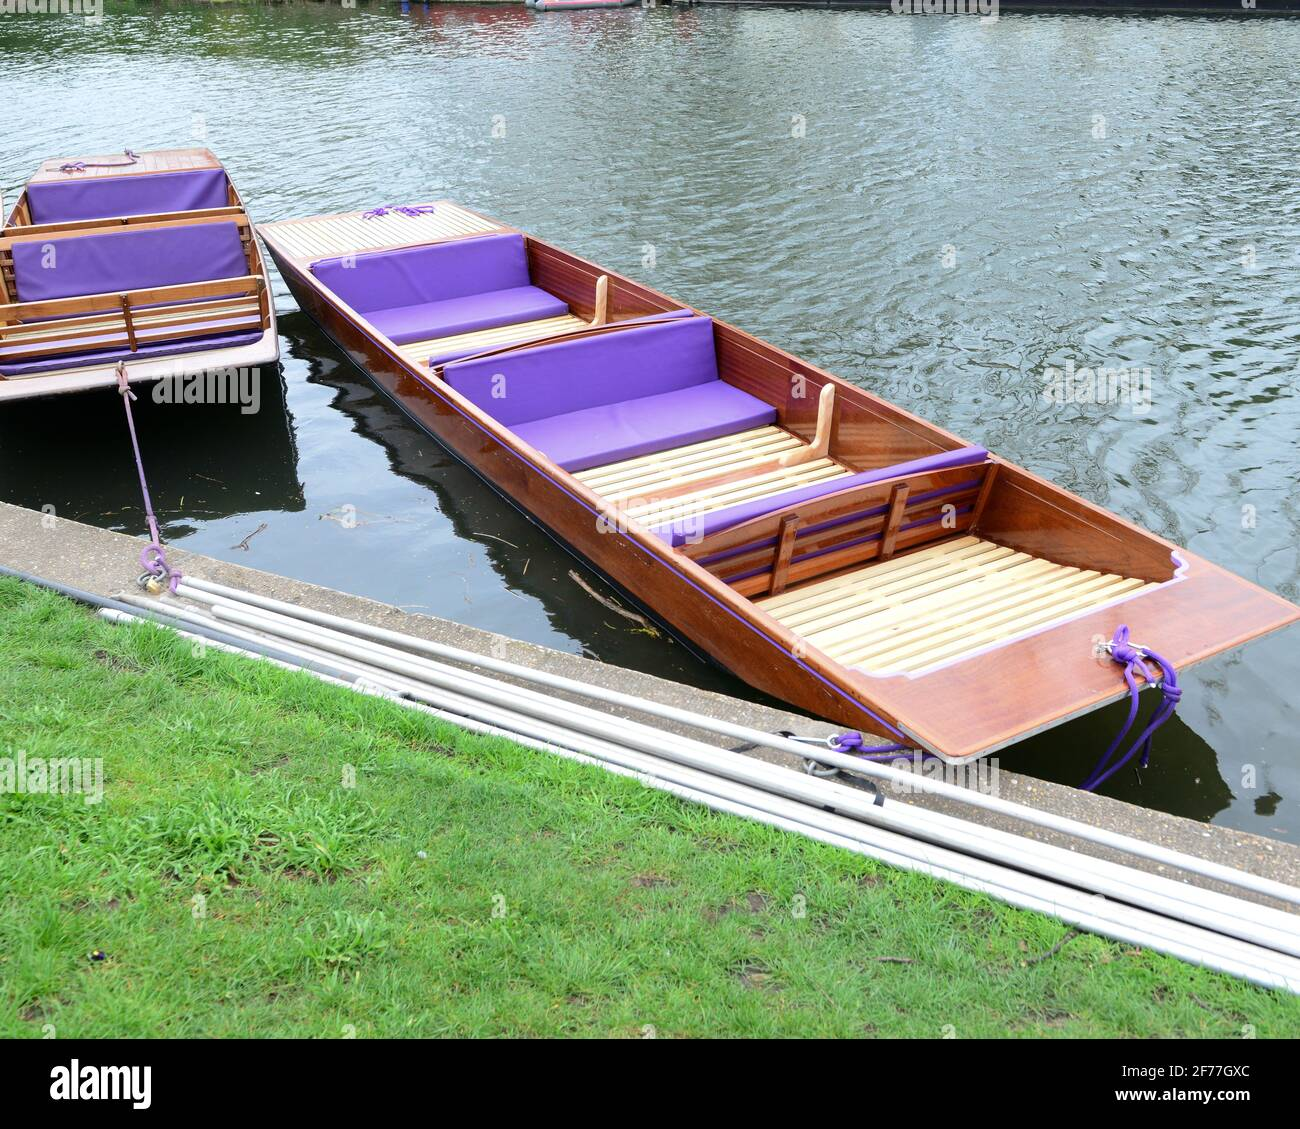 cambridge, UK, England, 03-04-2021. Empty colourful leisure punts moored at river edge, The mode of transort is used to take sight seeing tourists alo Stock Photo